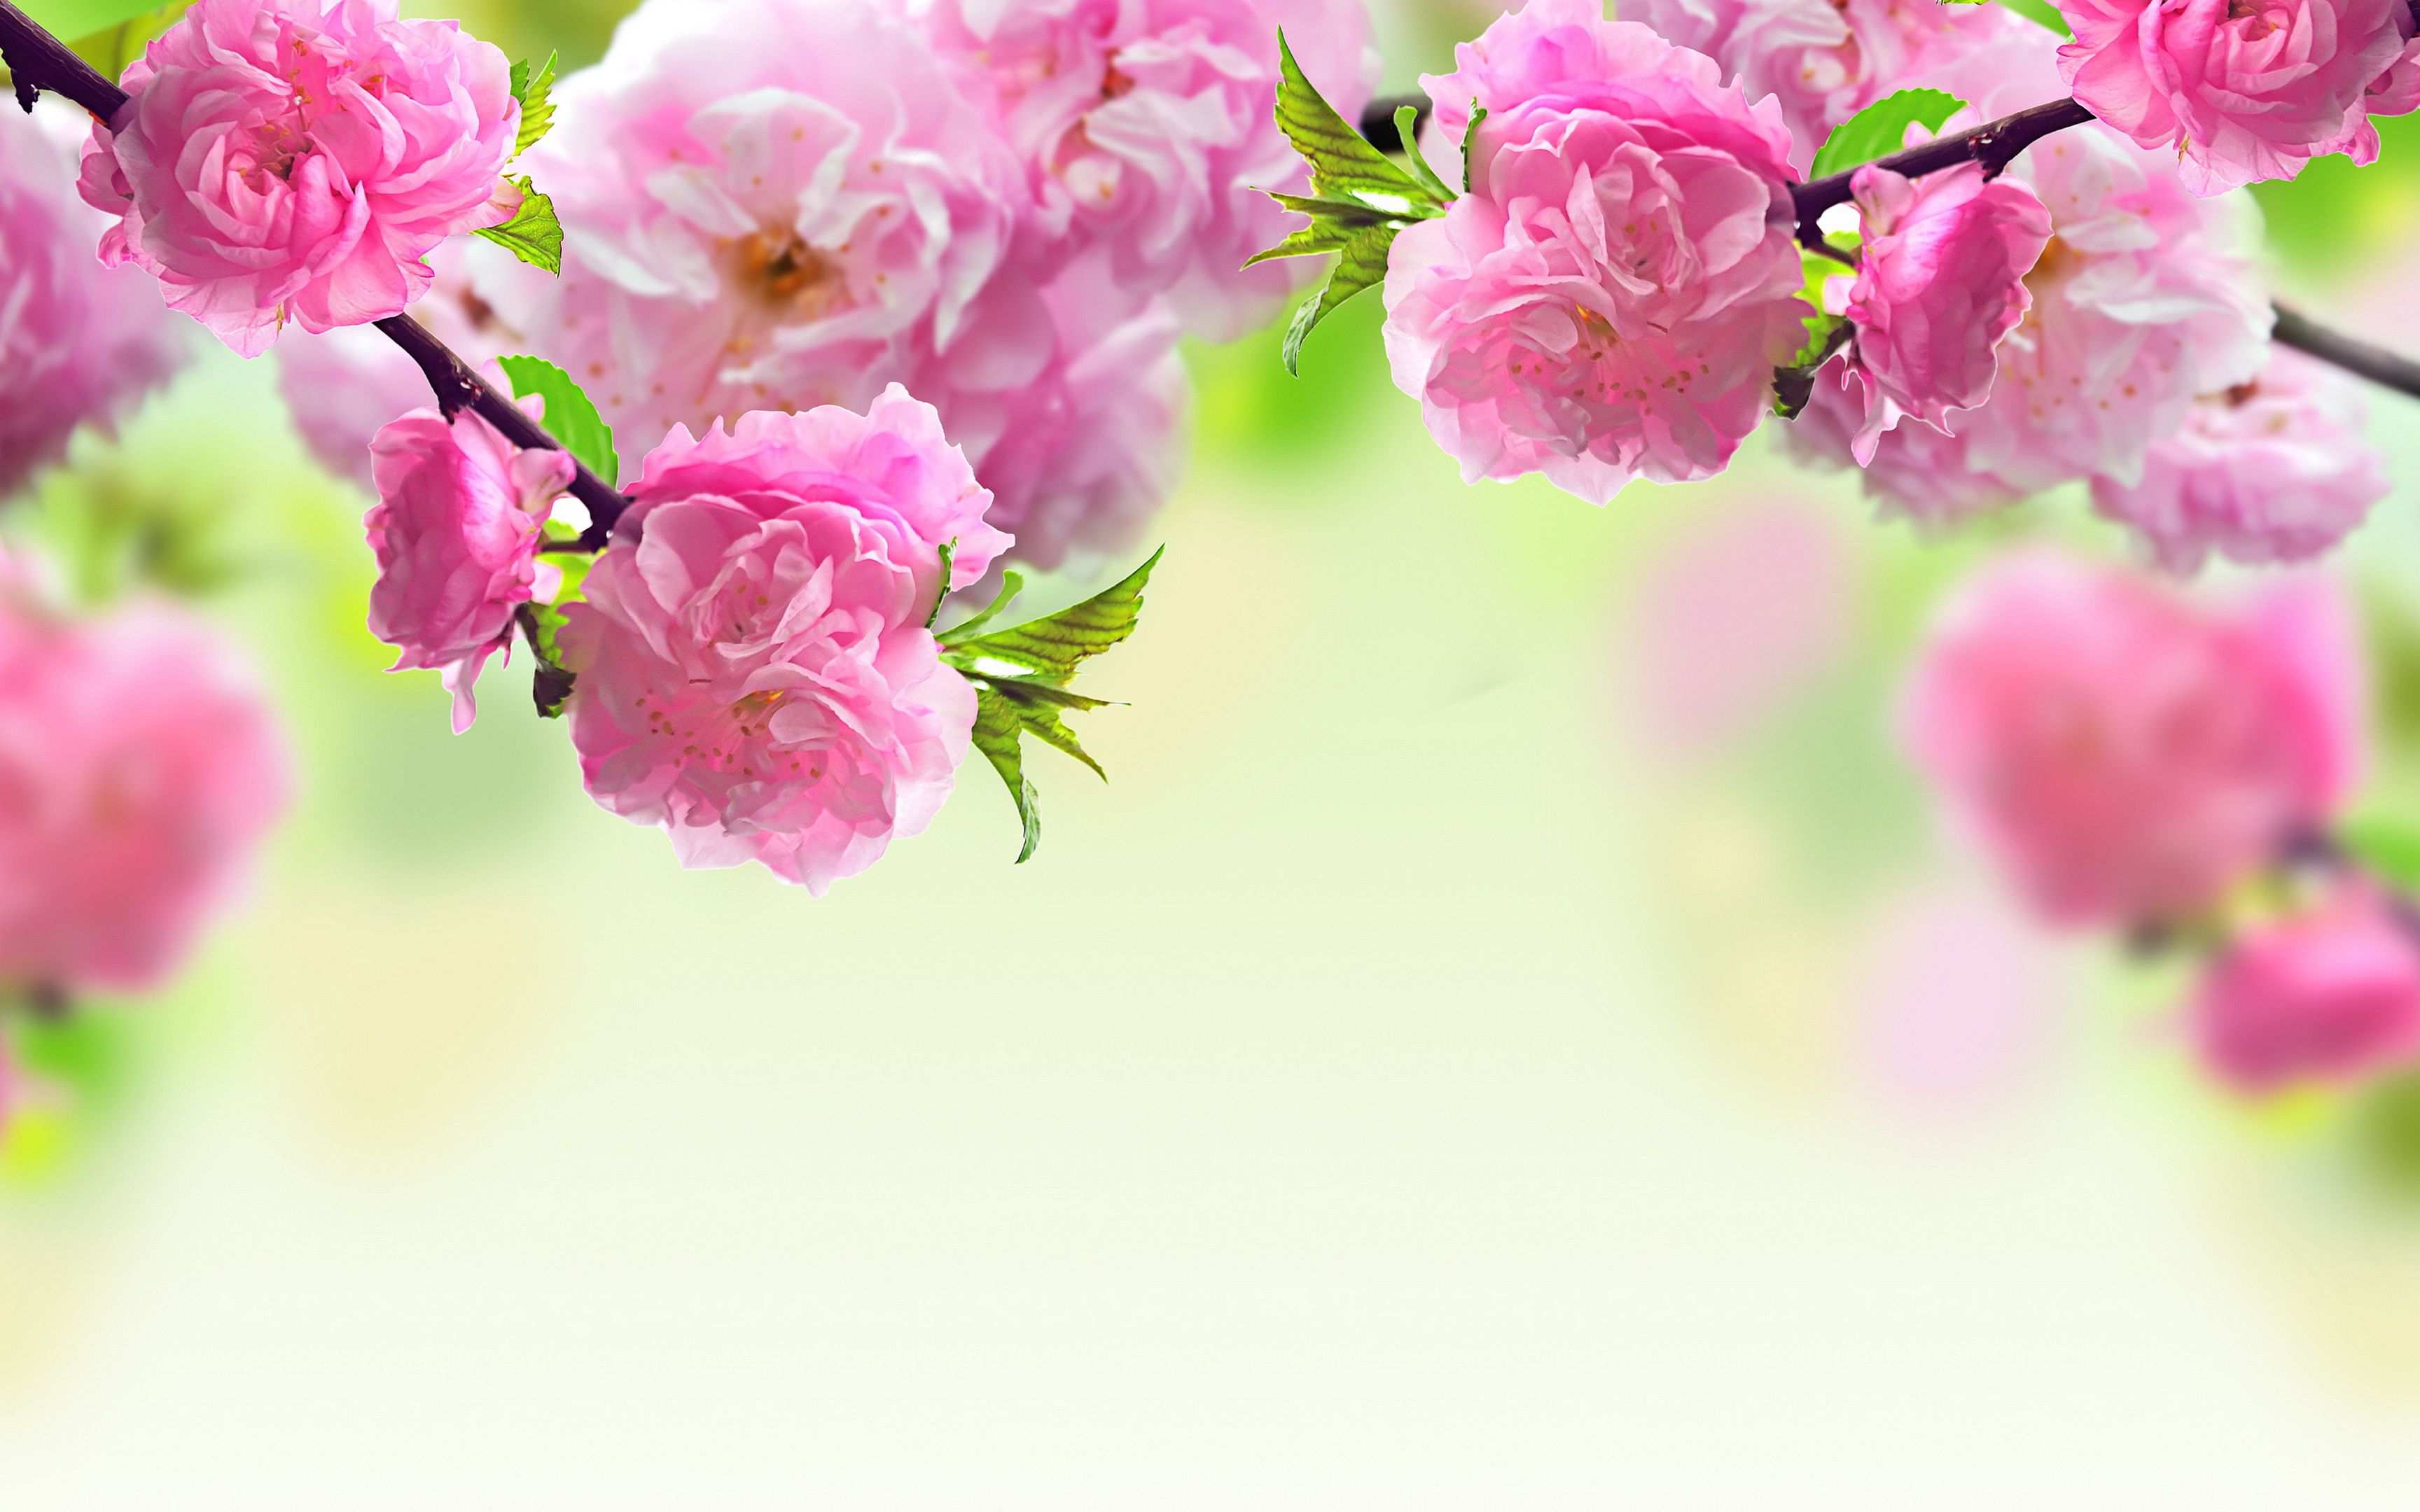 Spring flowers wallpapers httpwallpaperzoospring flowers spring flowers wallpapers httpwallpaperzoospring flowers wallpapers 19128ml springflowers mightylinksfo